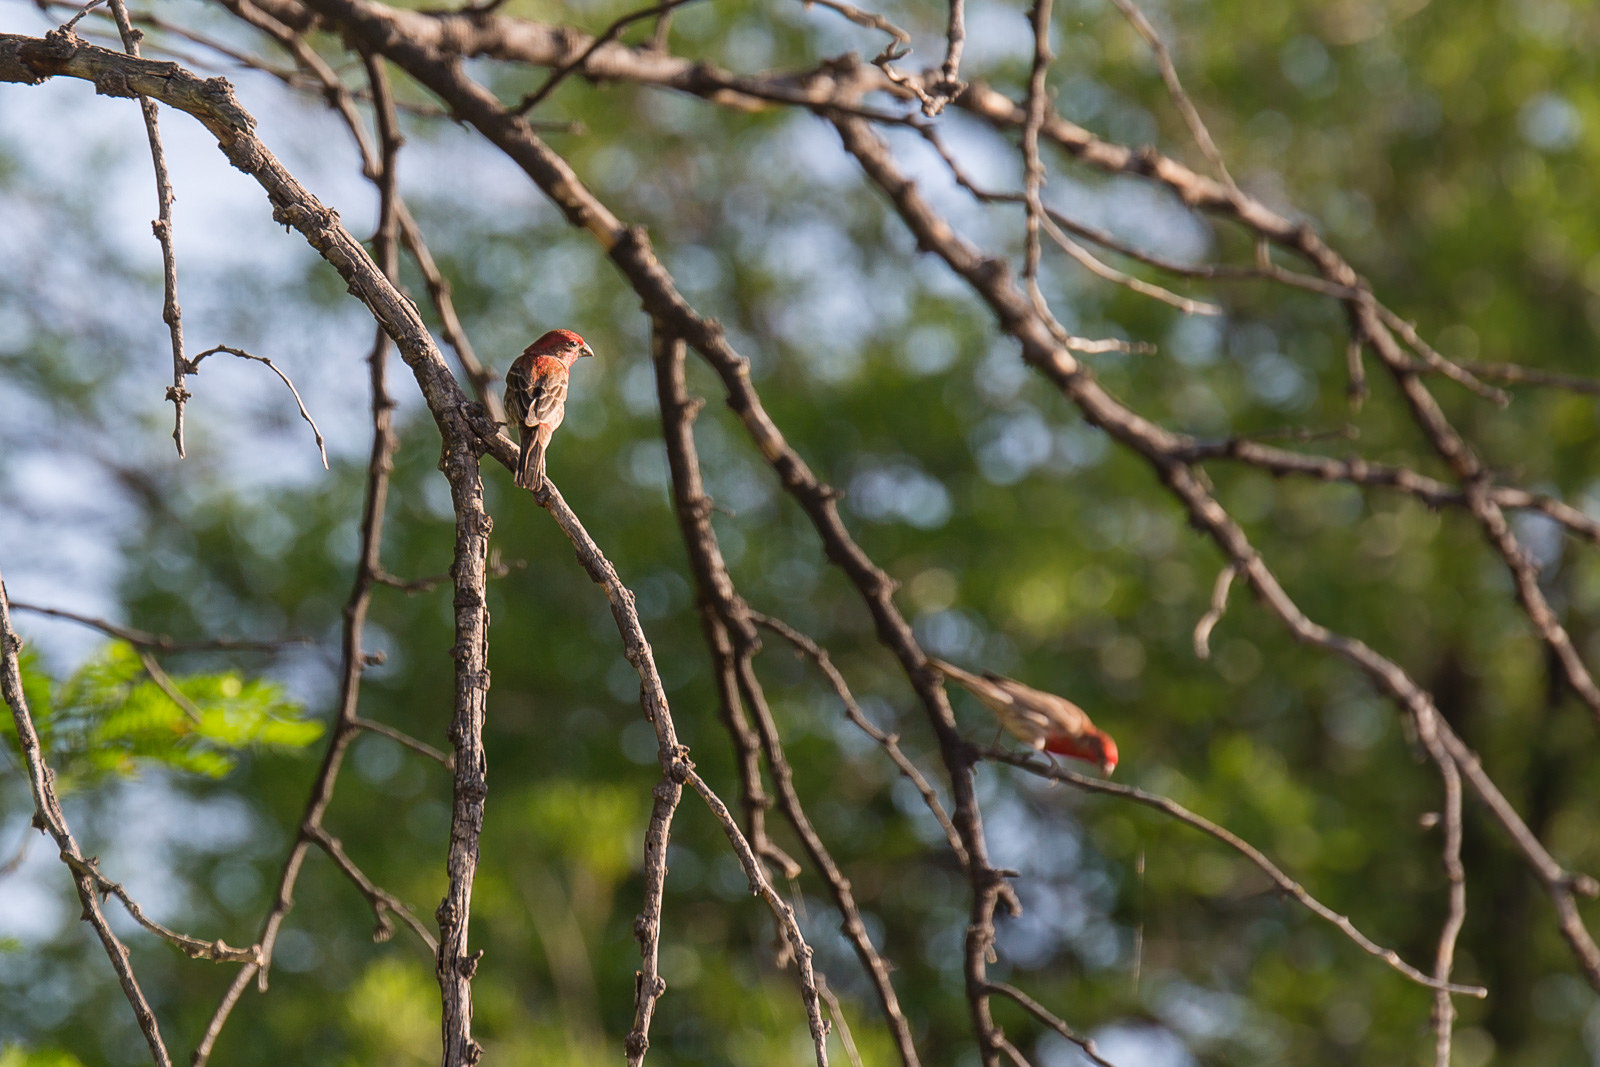 House finches in Big Bend